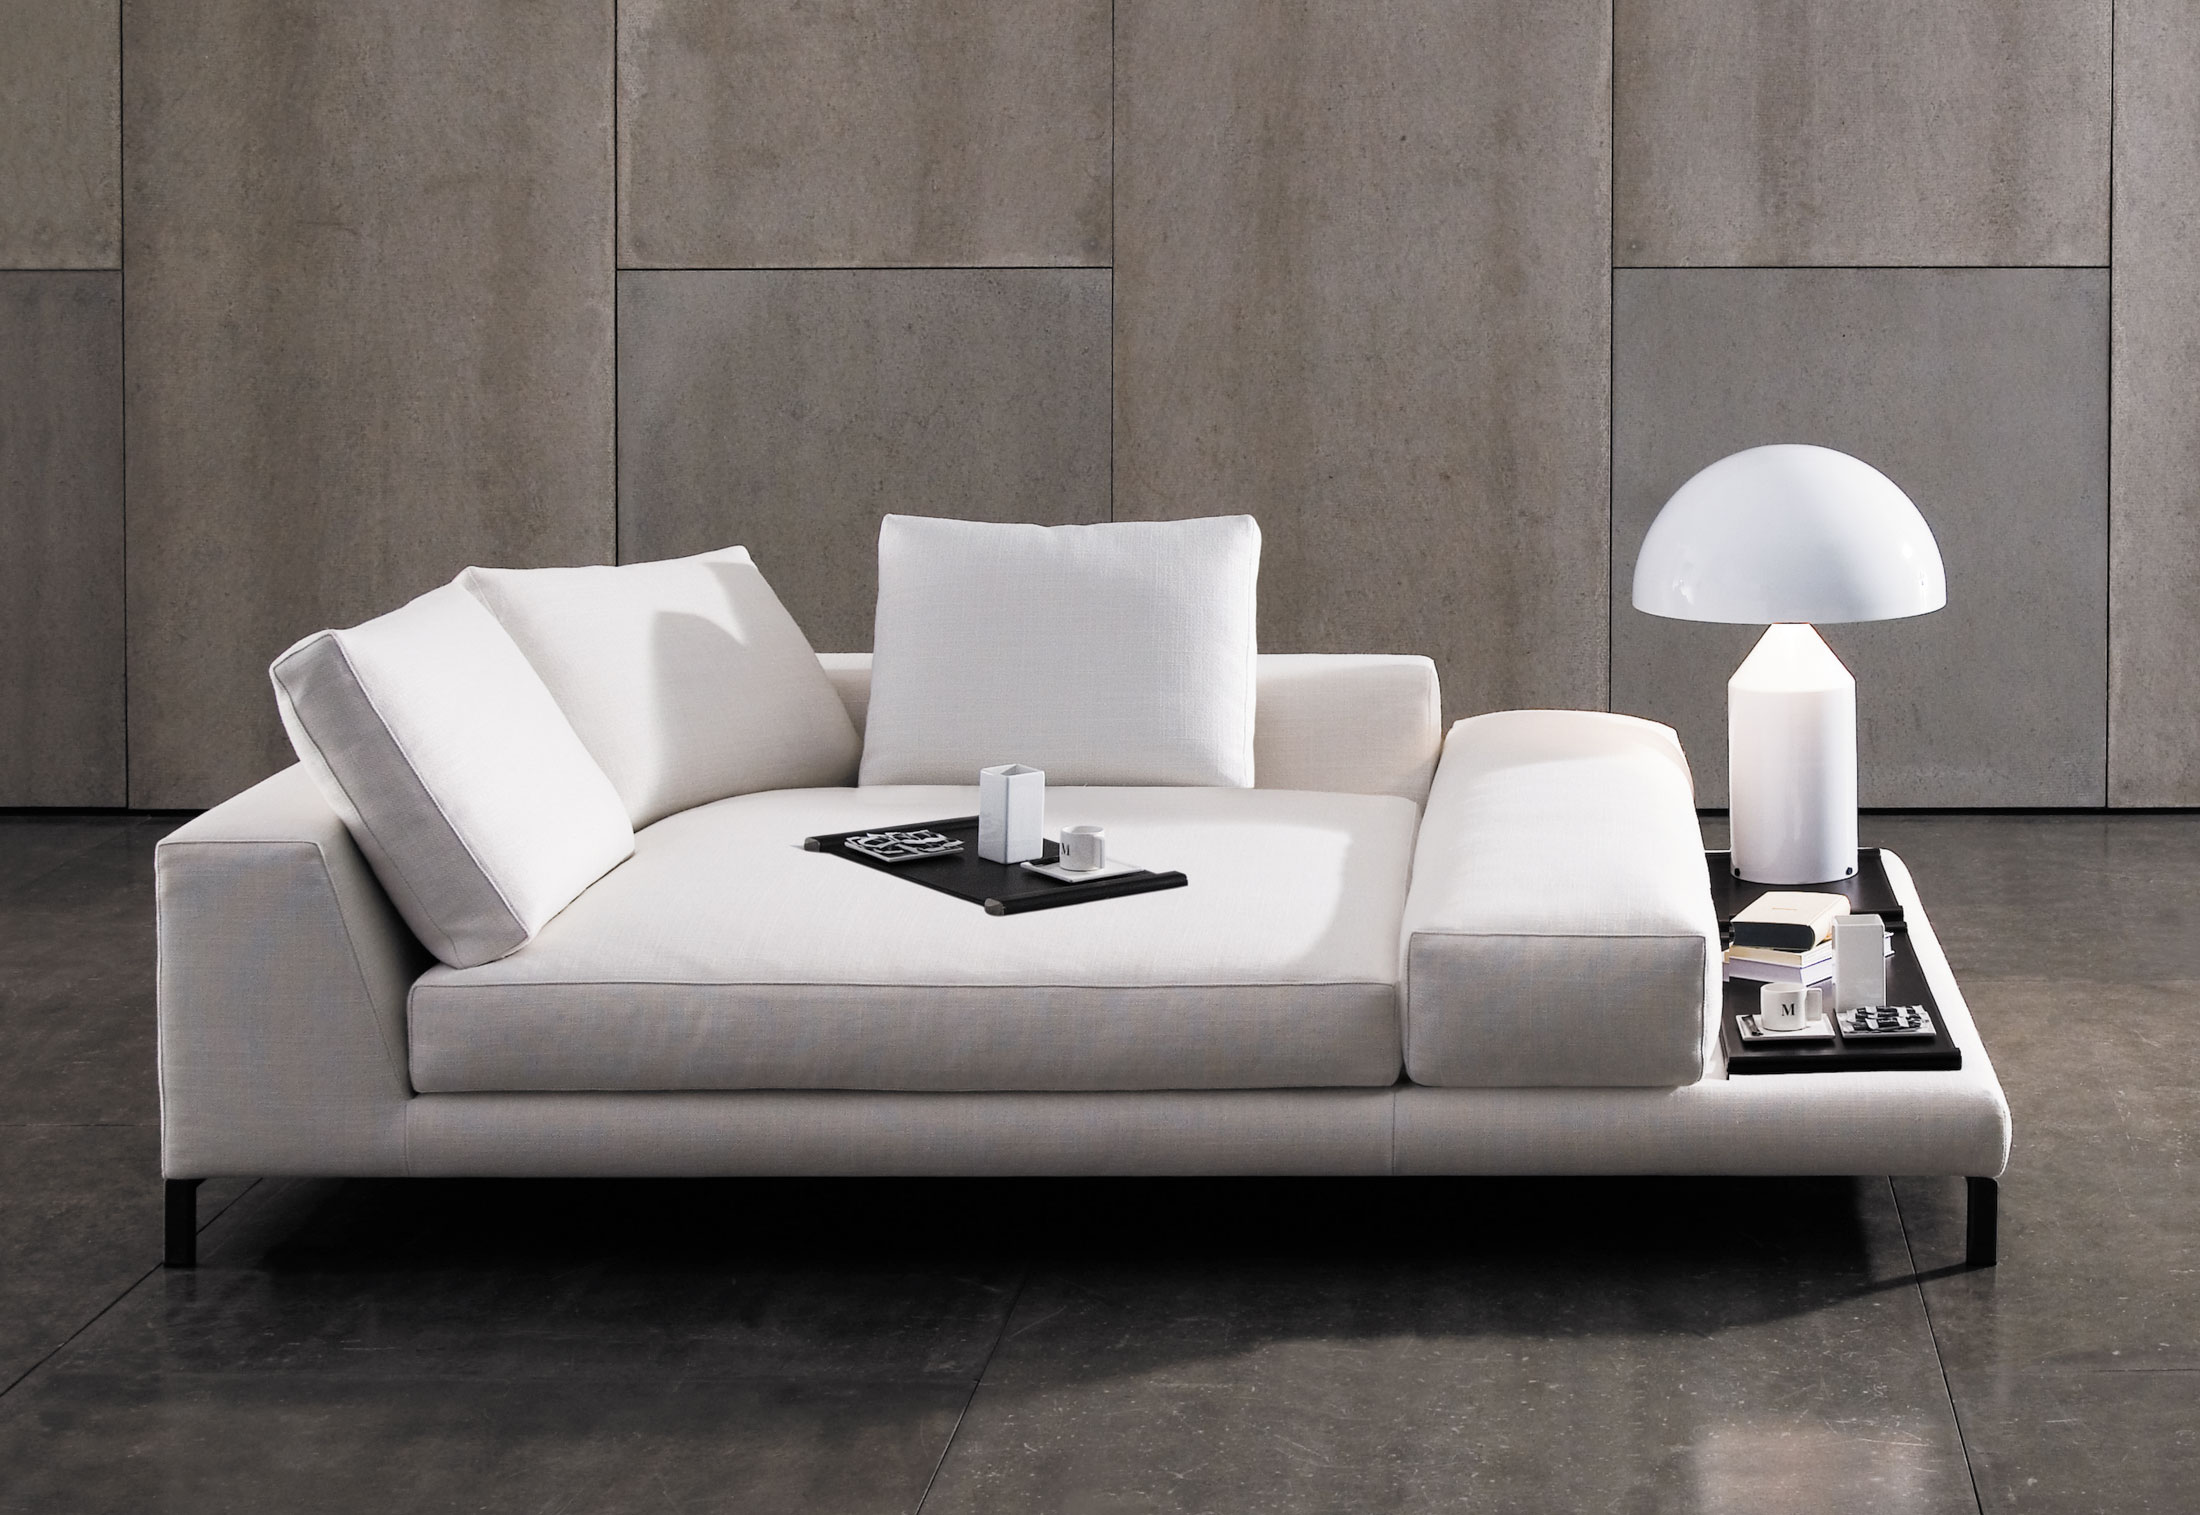 Urban Home Sofa Bed Hamilton Islands By Minotti | Stylepark